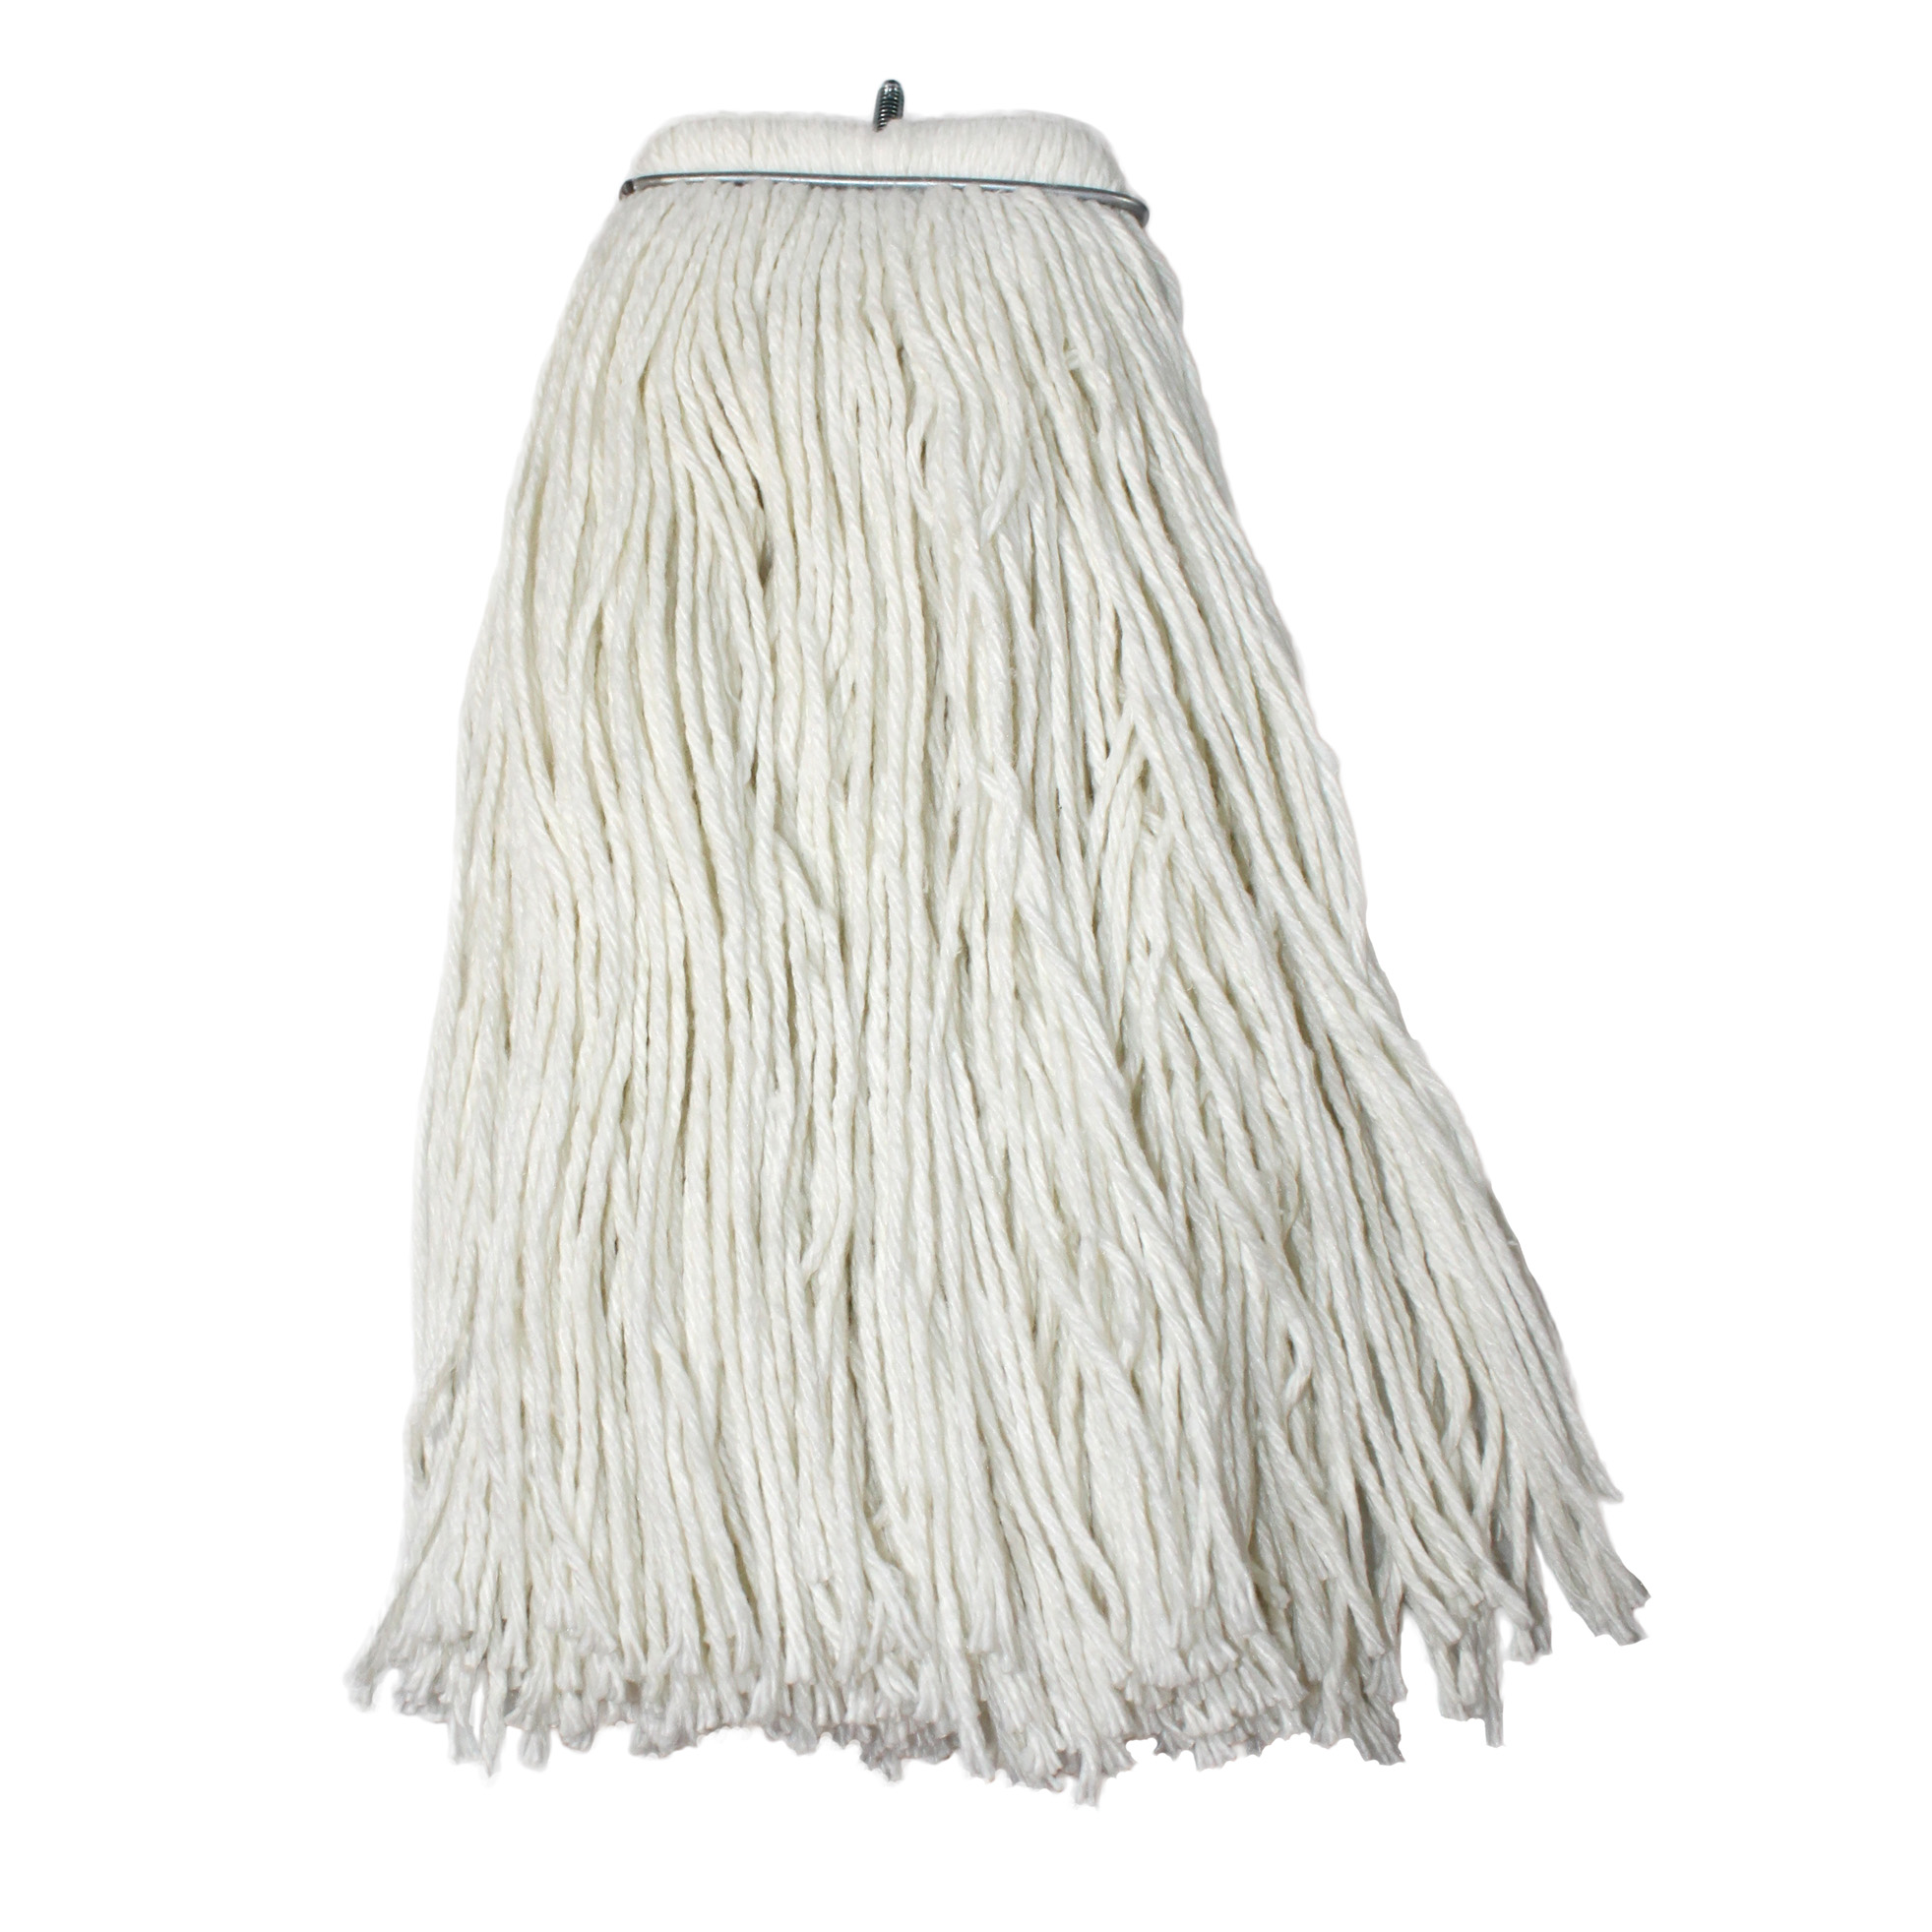 Impact Products 61120 wet mop head